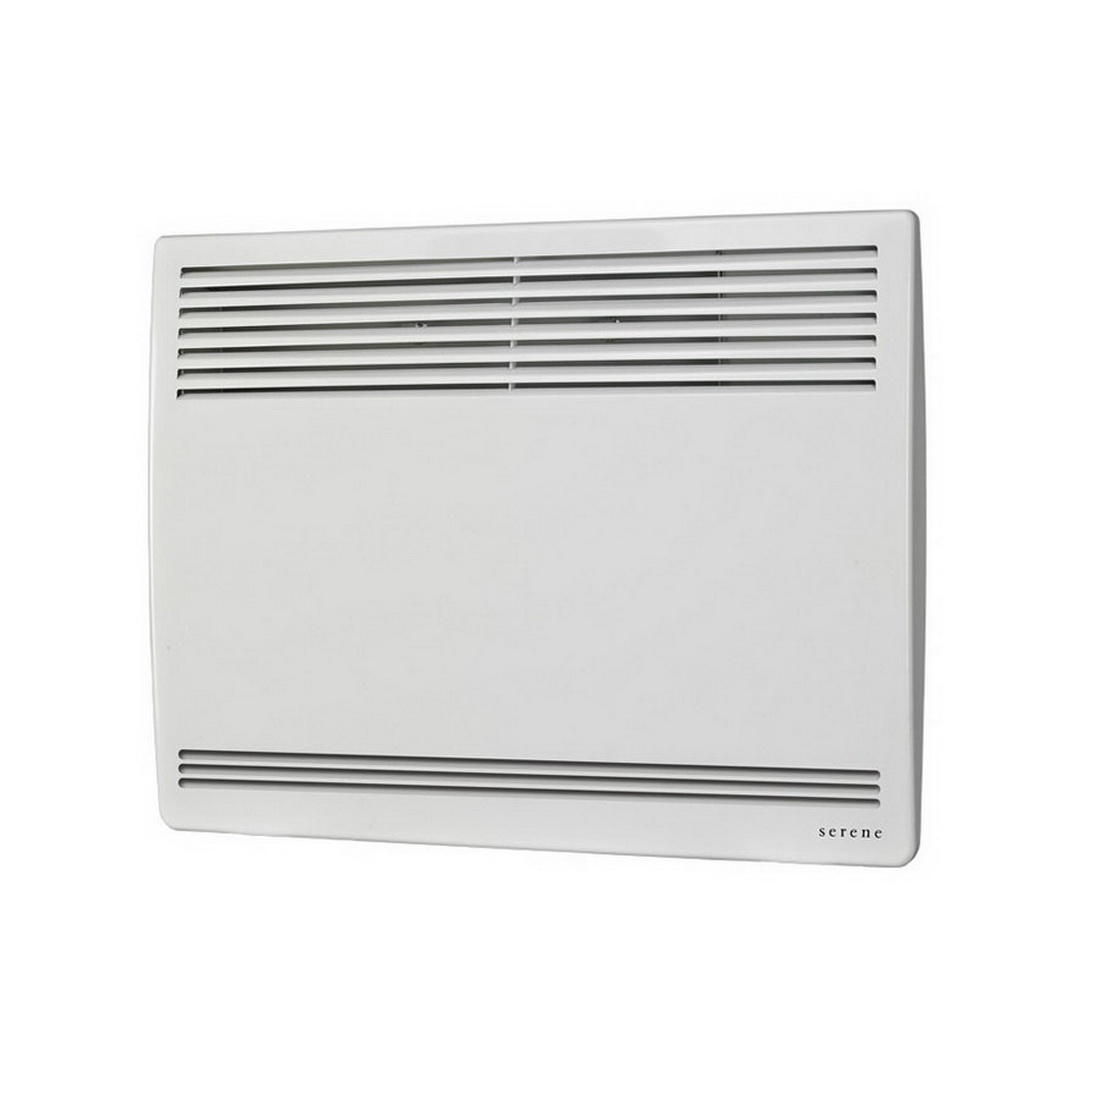 Serene Intimo Electronic Zetto Panel Heater 1kW French White S2026